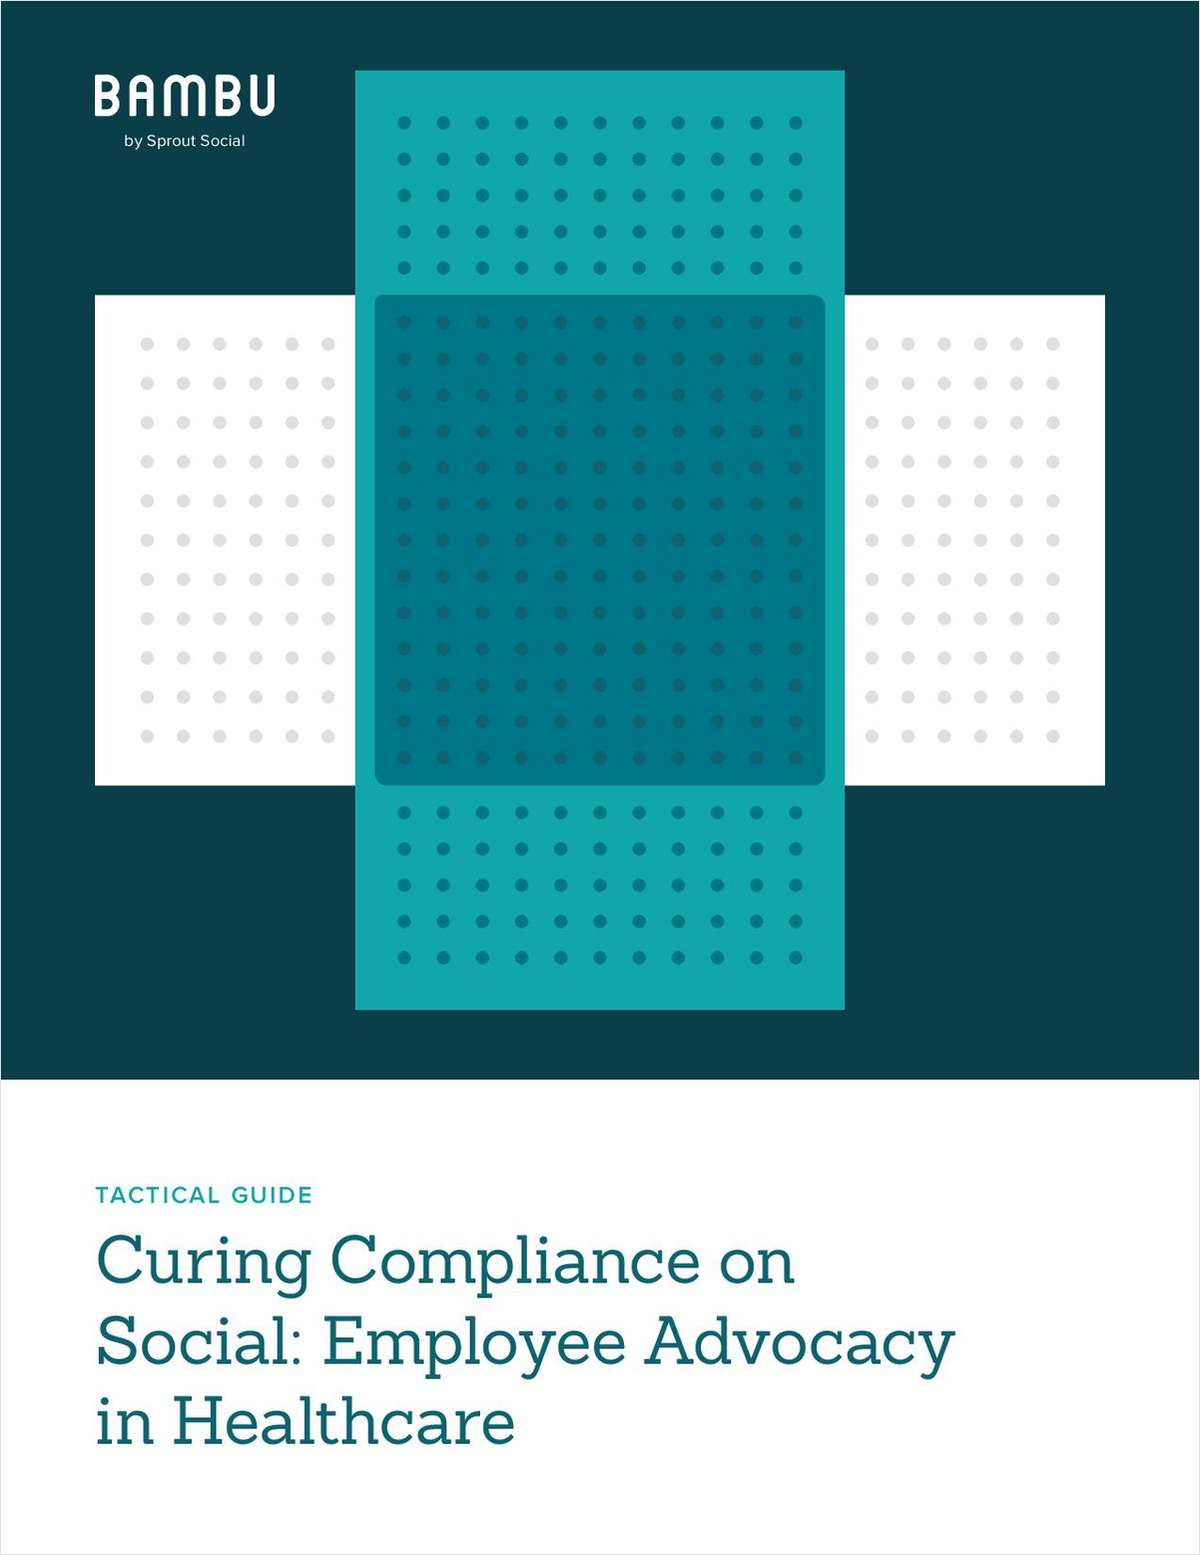 Curing Compliance on Social: Employee Advocacy in Healthcare